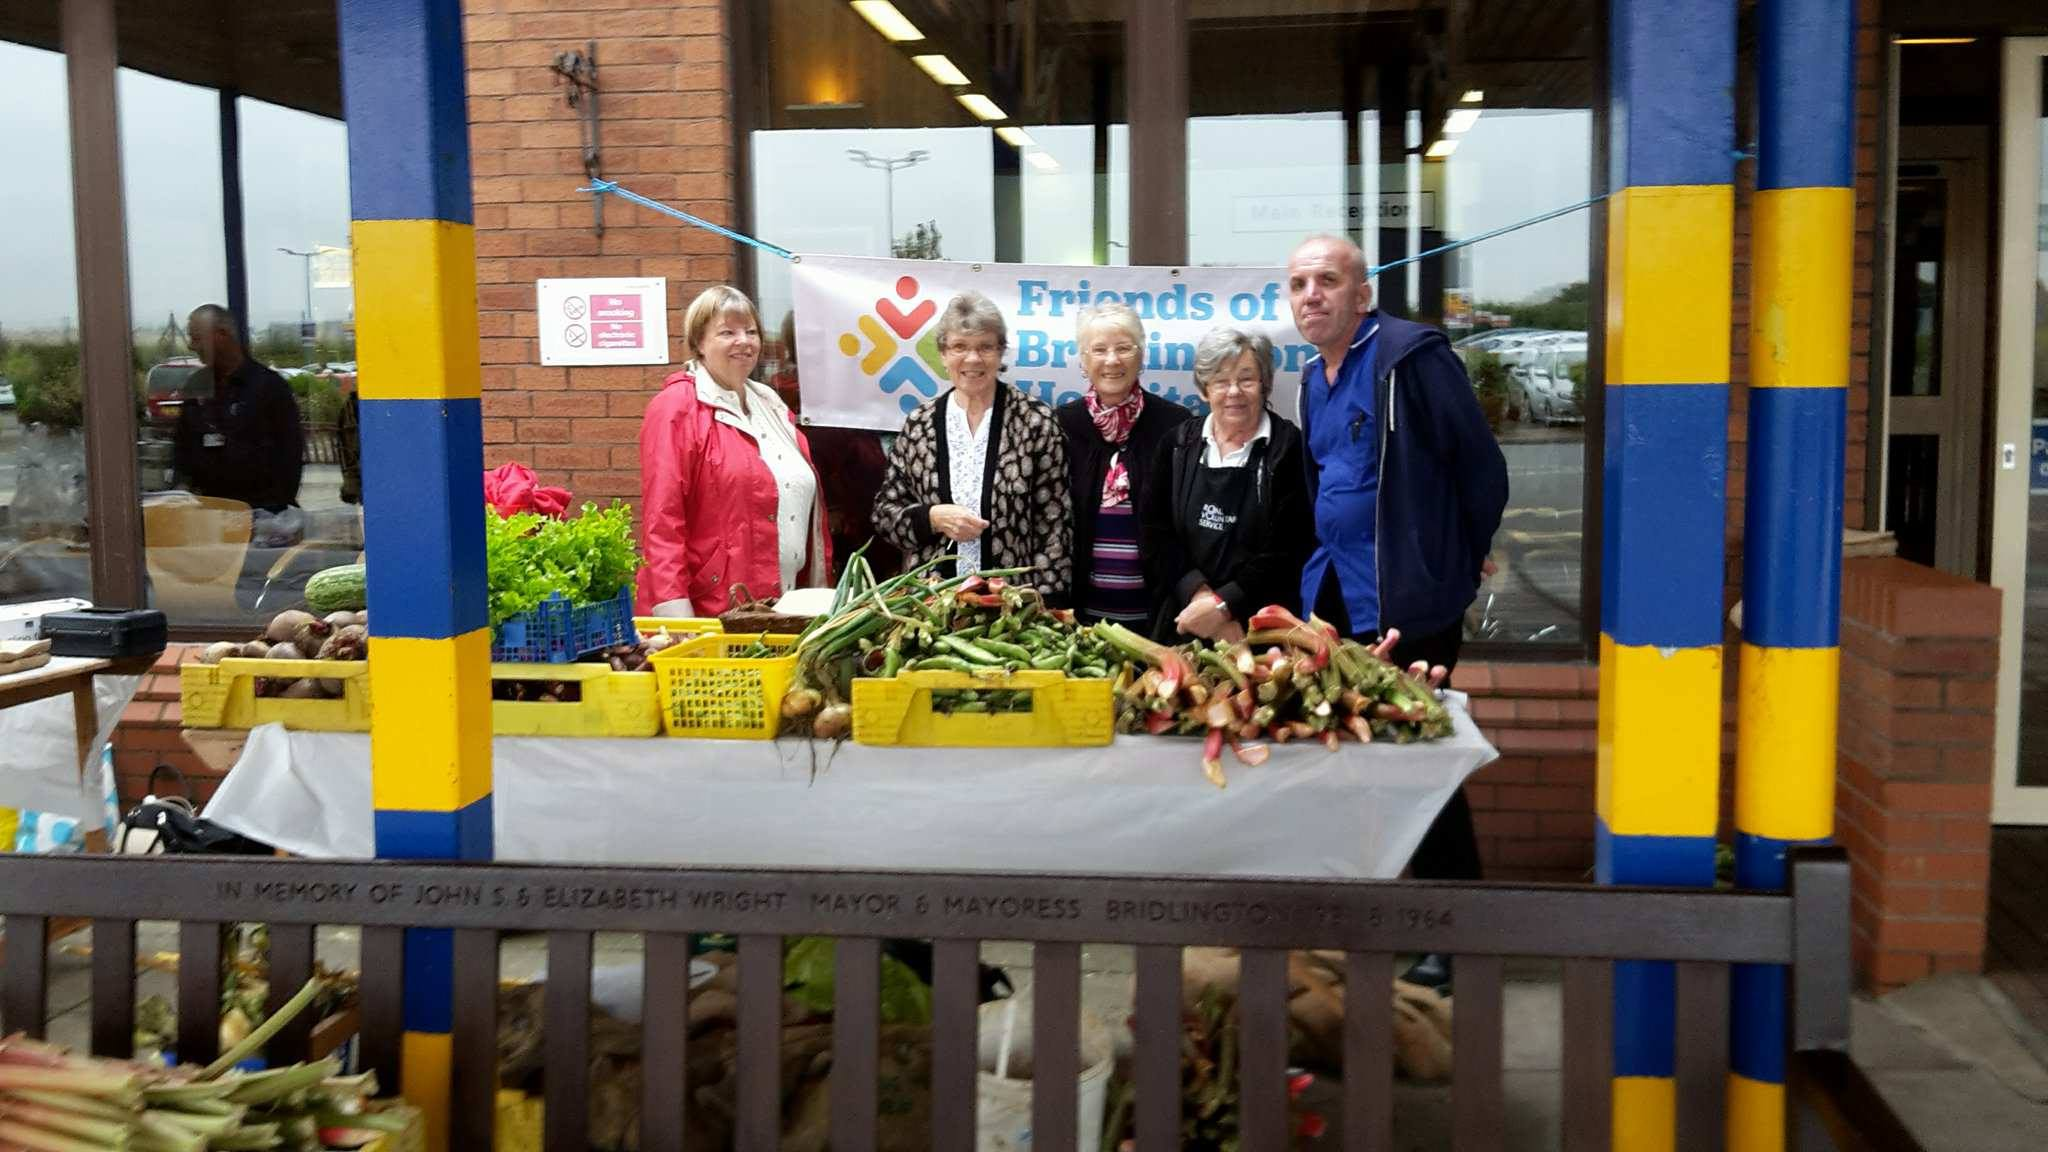 Selling garden produce to raise yet more funds